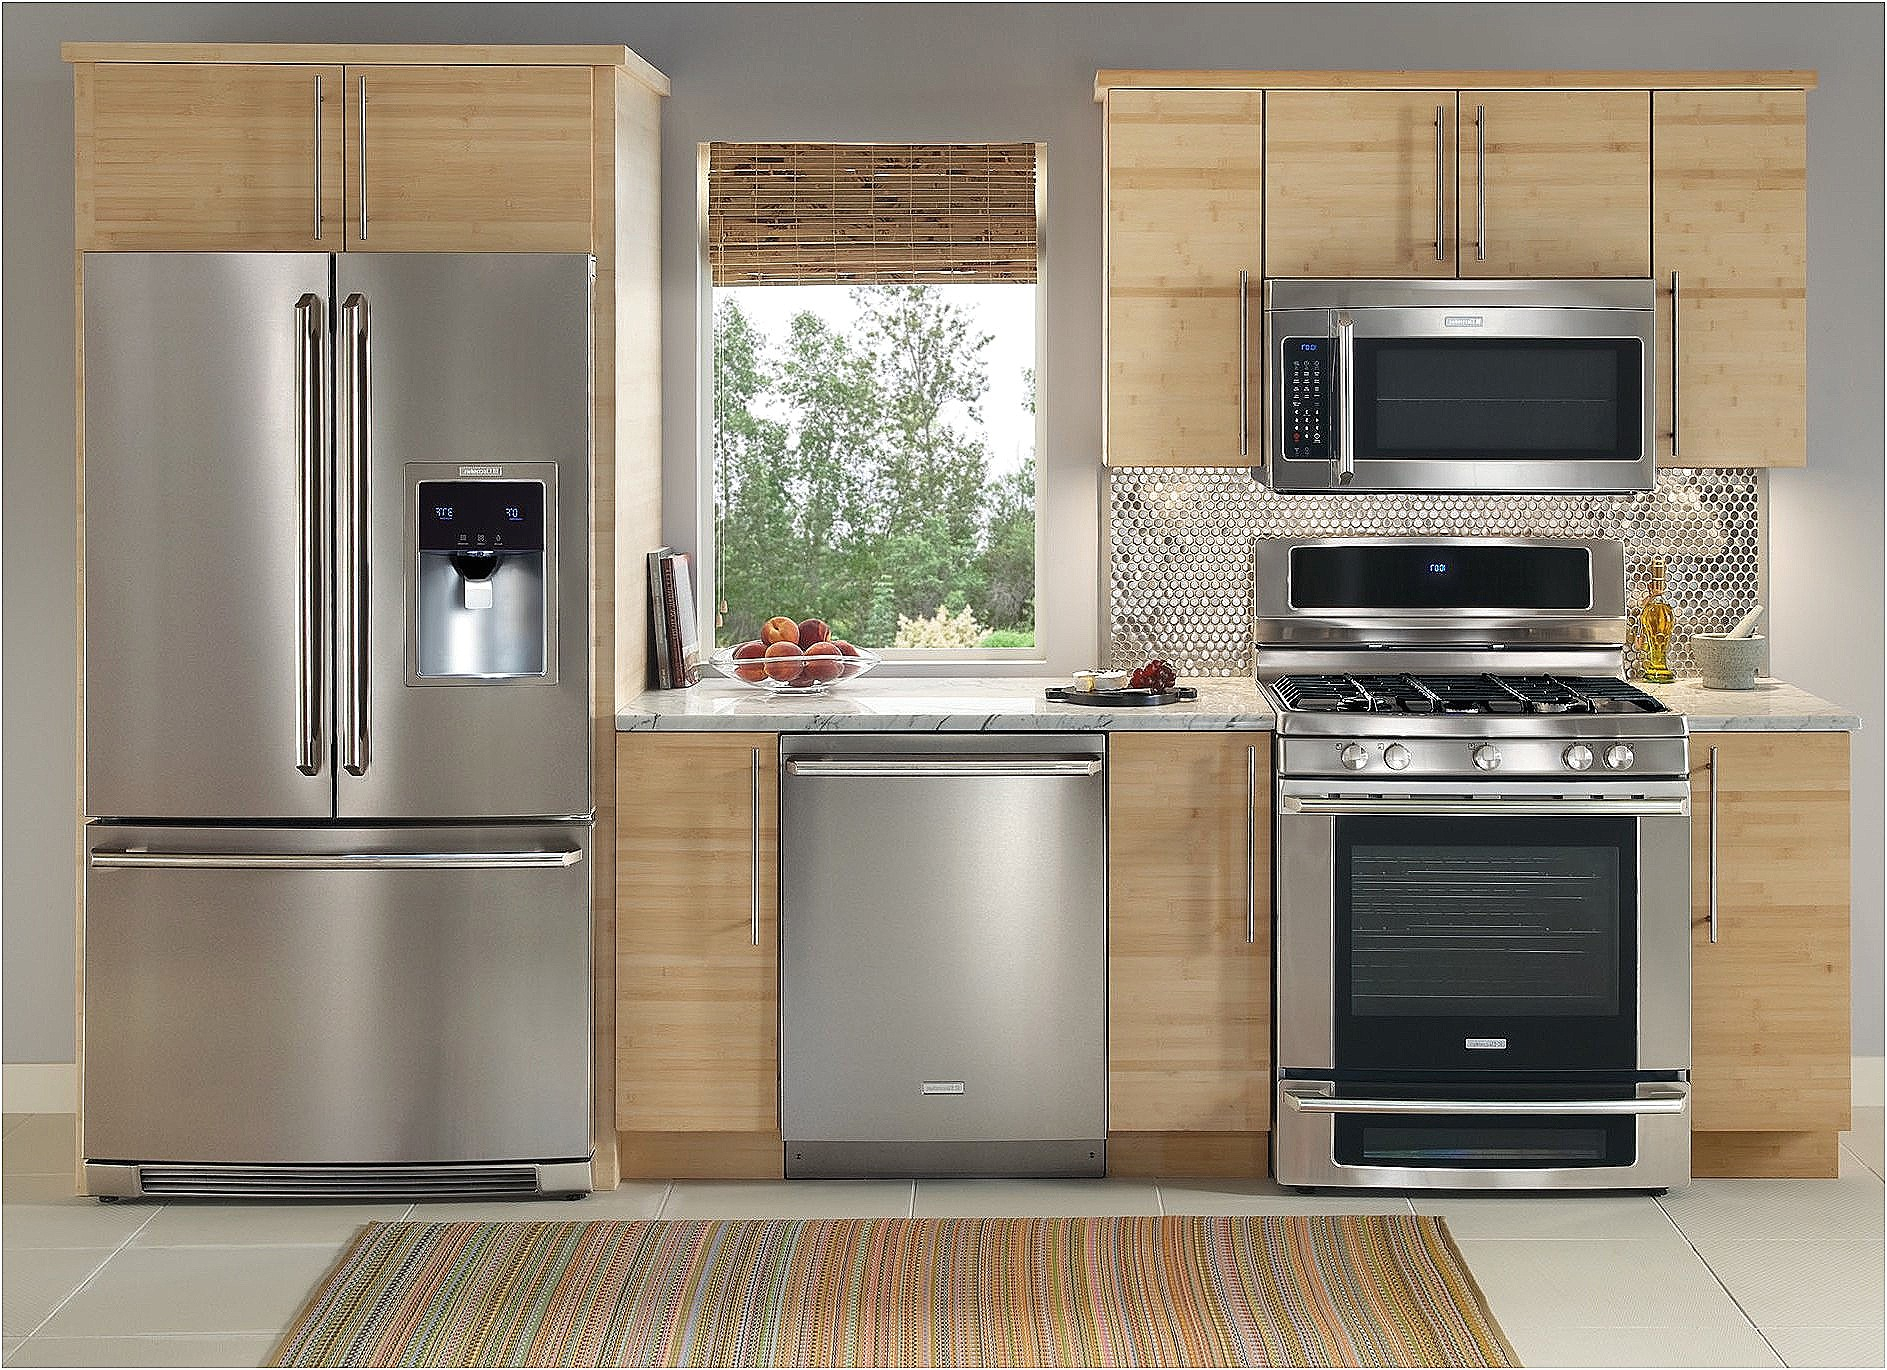 Military Deal 15% Off Purchase From Frigidaire